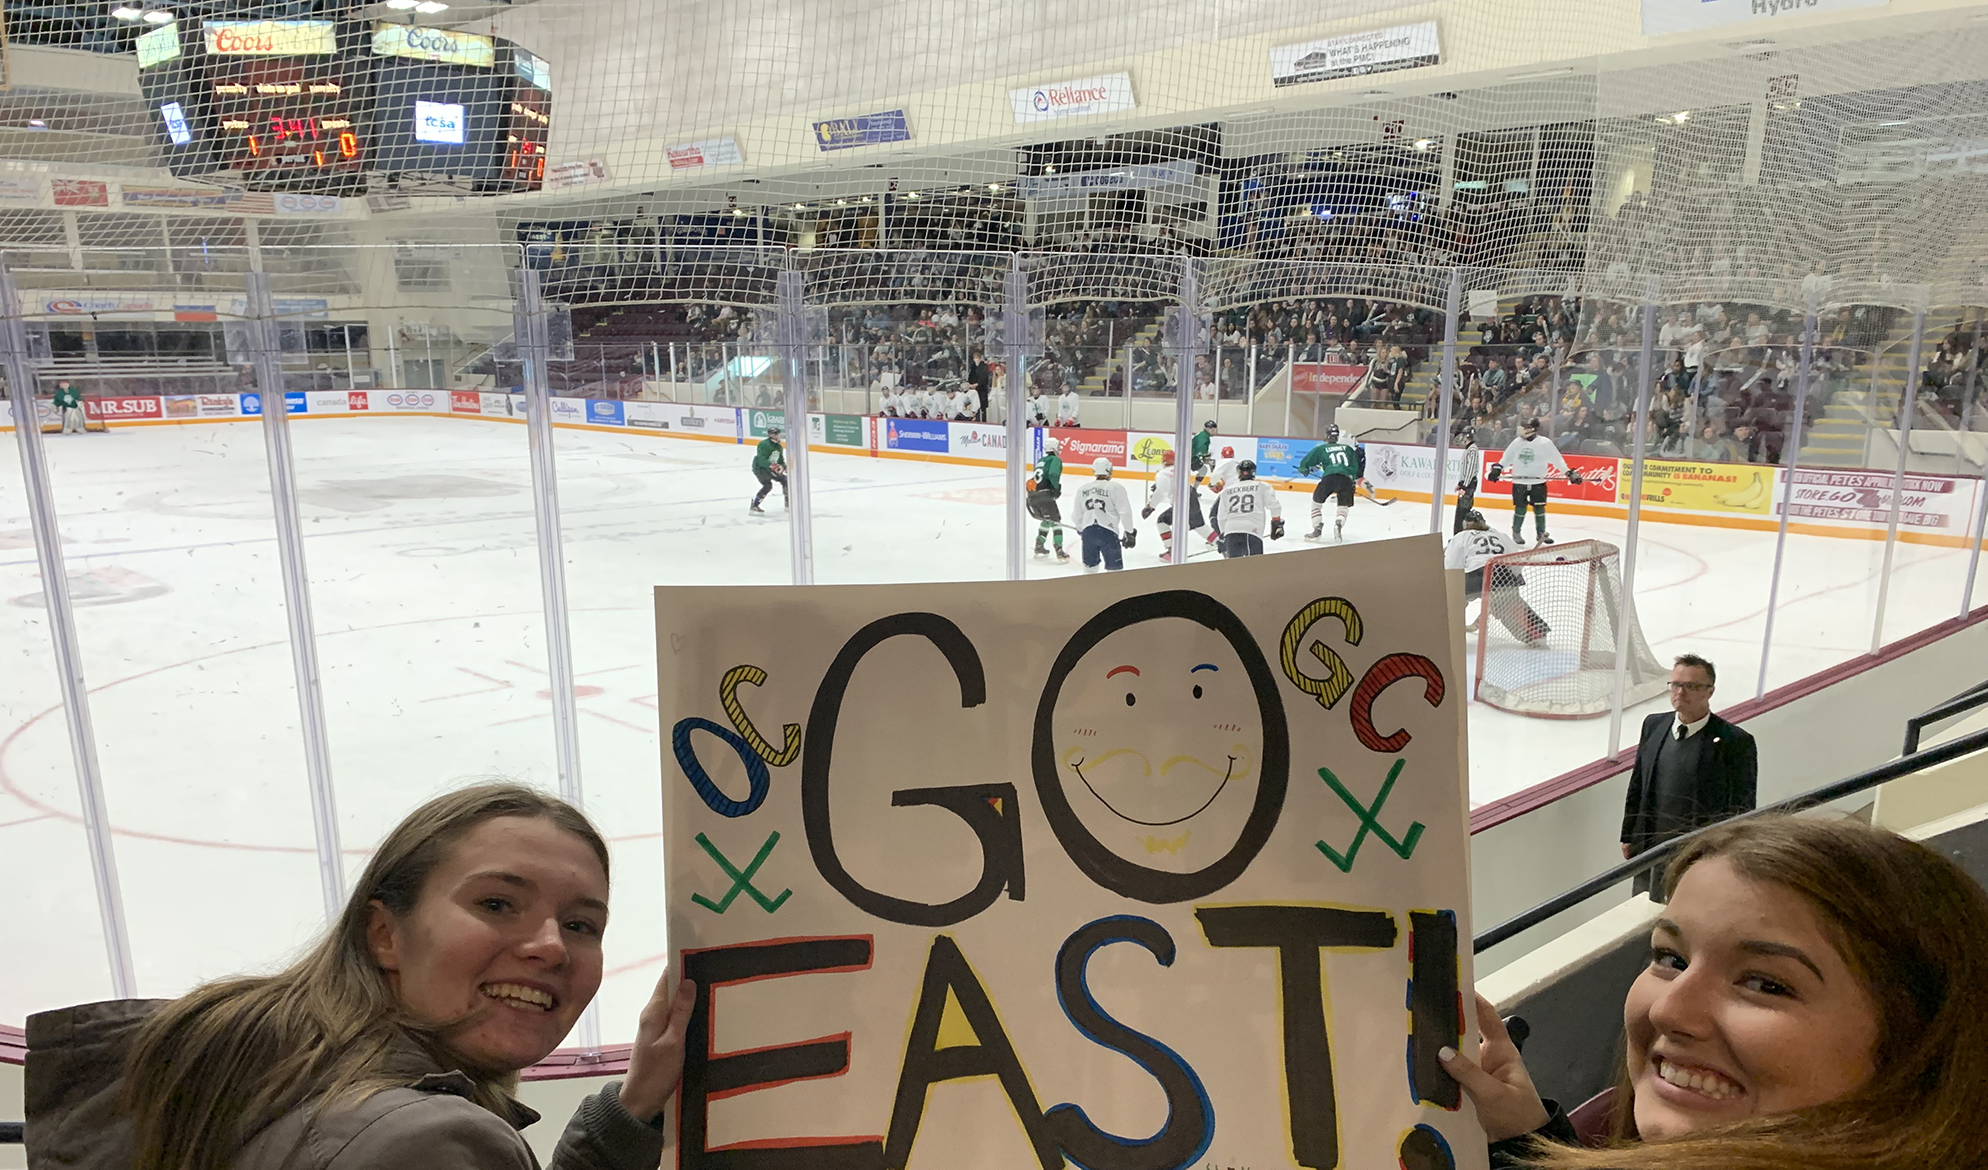 The 10th Annual East Vs. West Bank Hockey Game